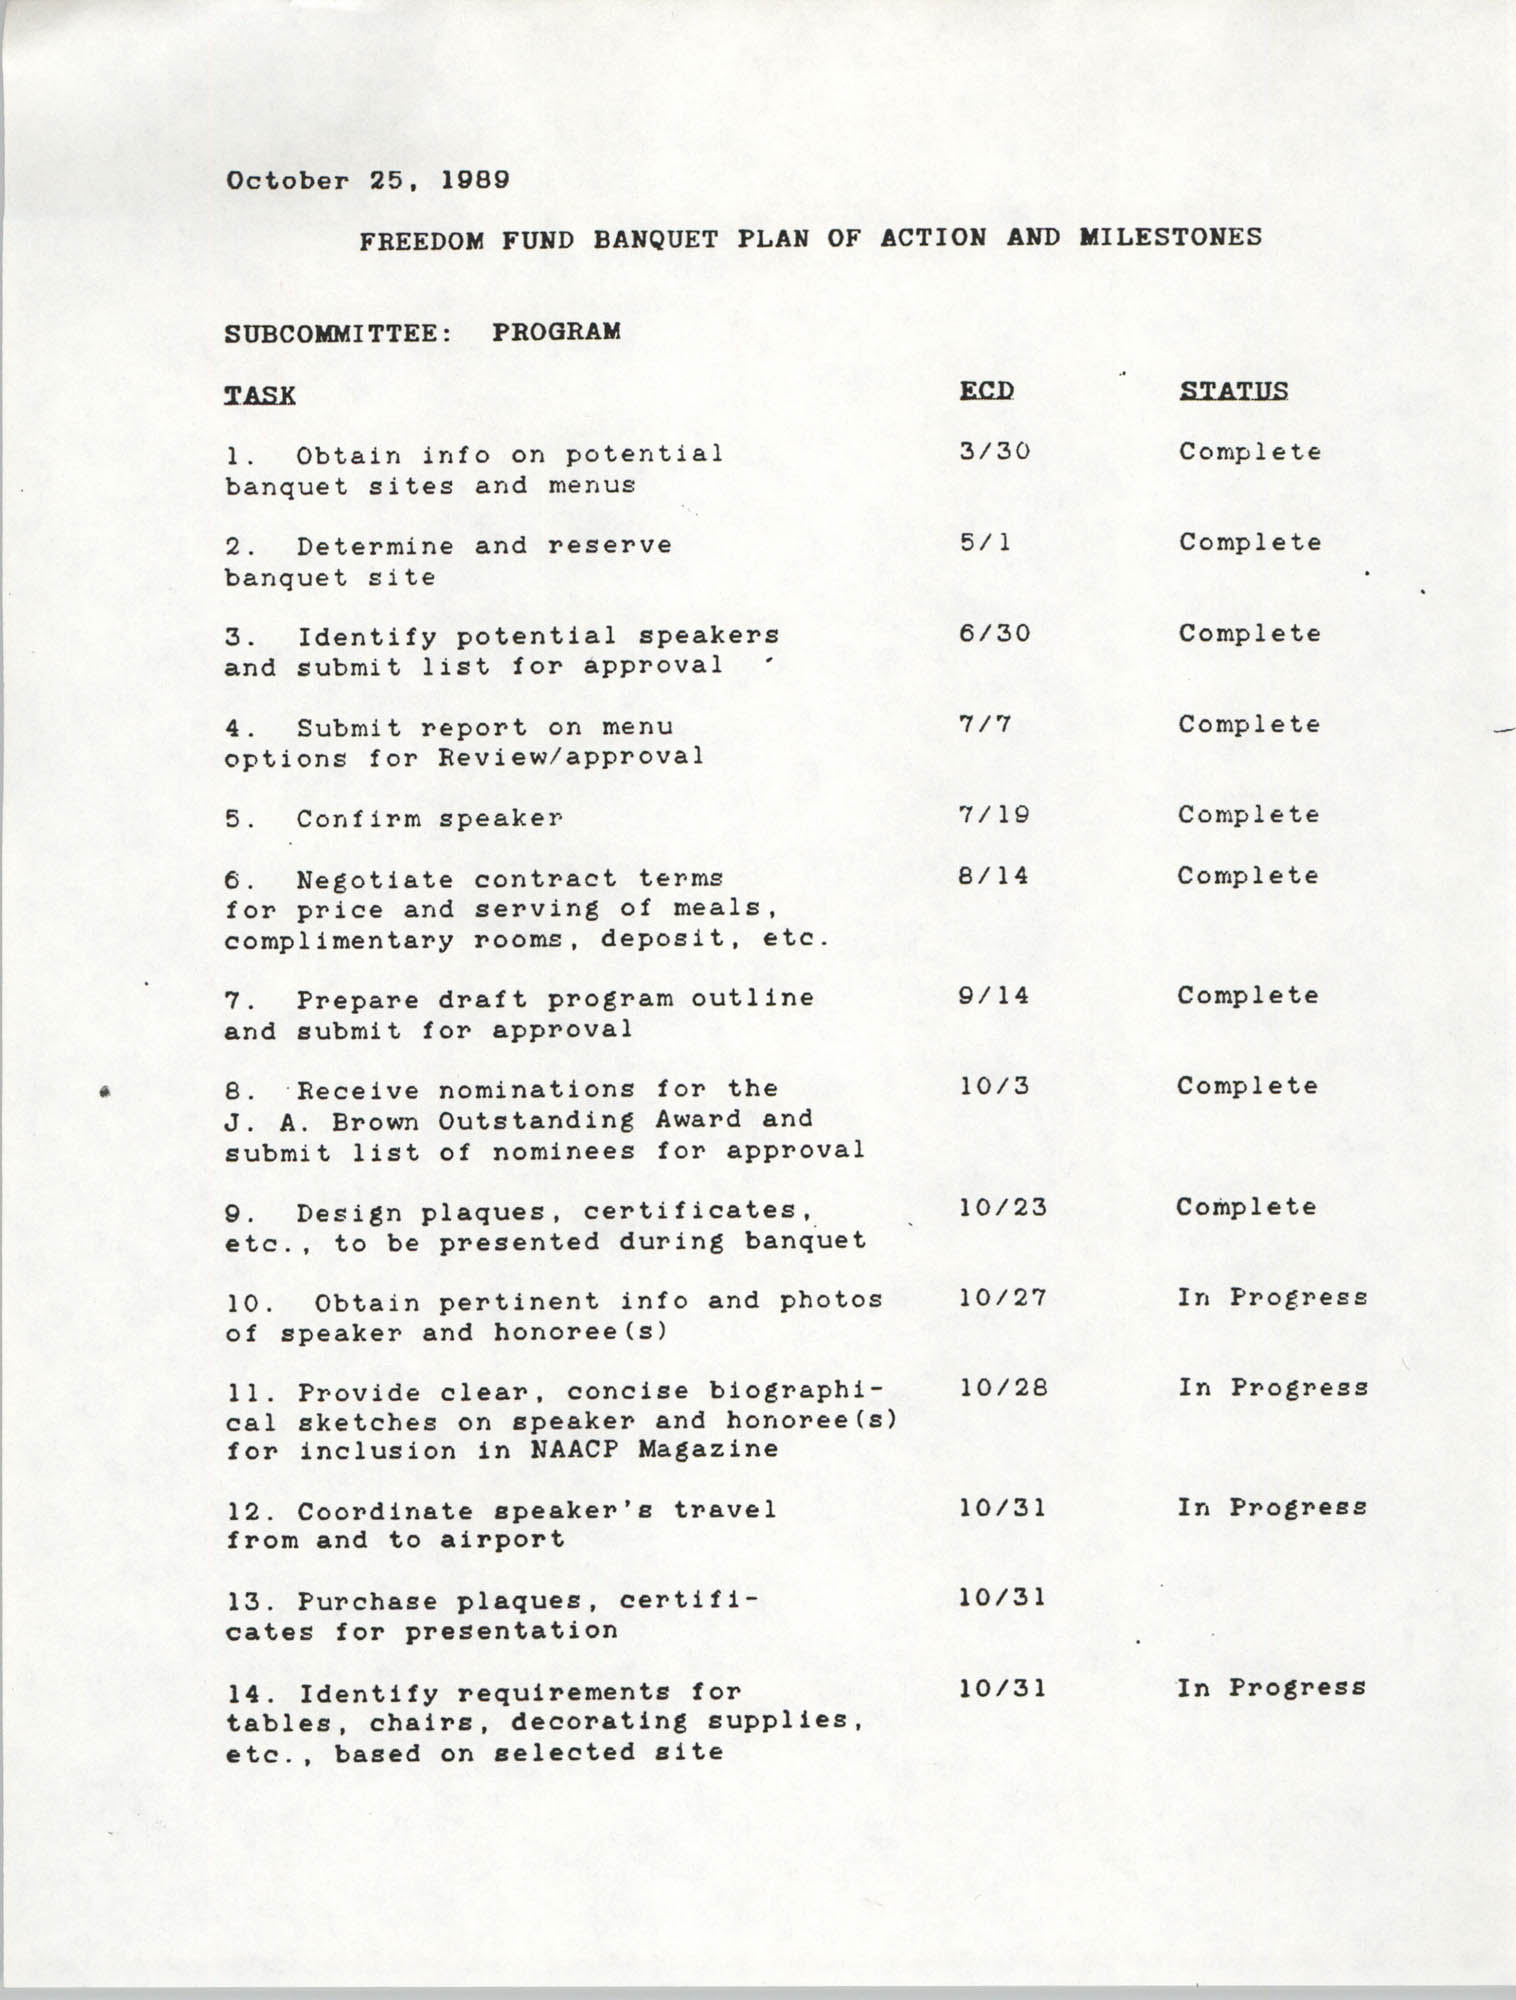 Plan of Action and Milestones, Freedom Fund Banquet, Program Subcommittee, October 25, 1989